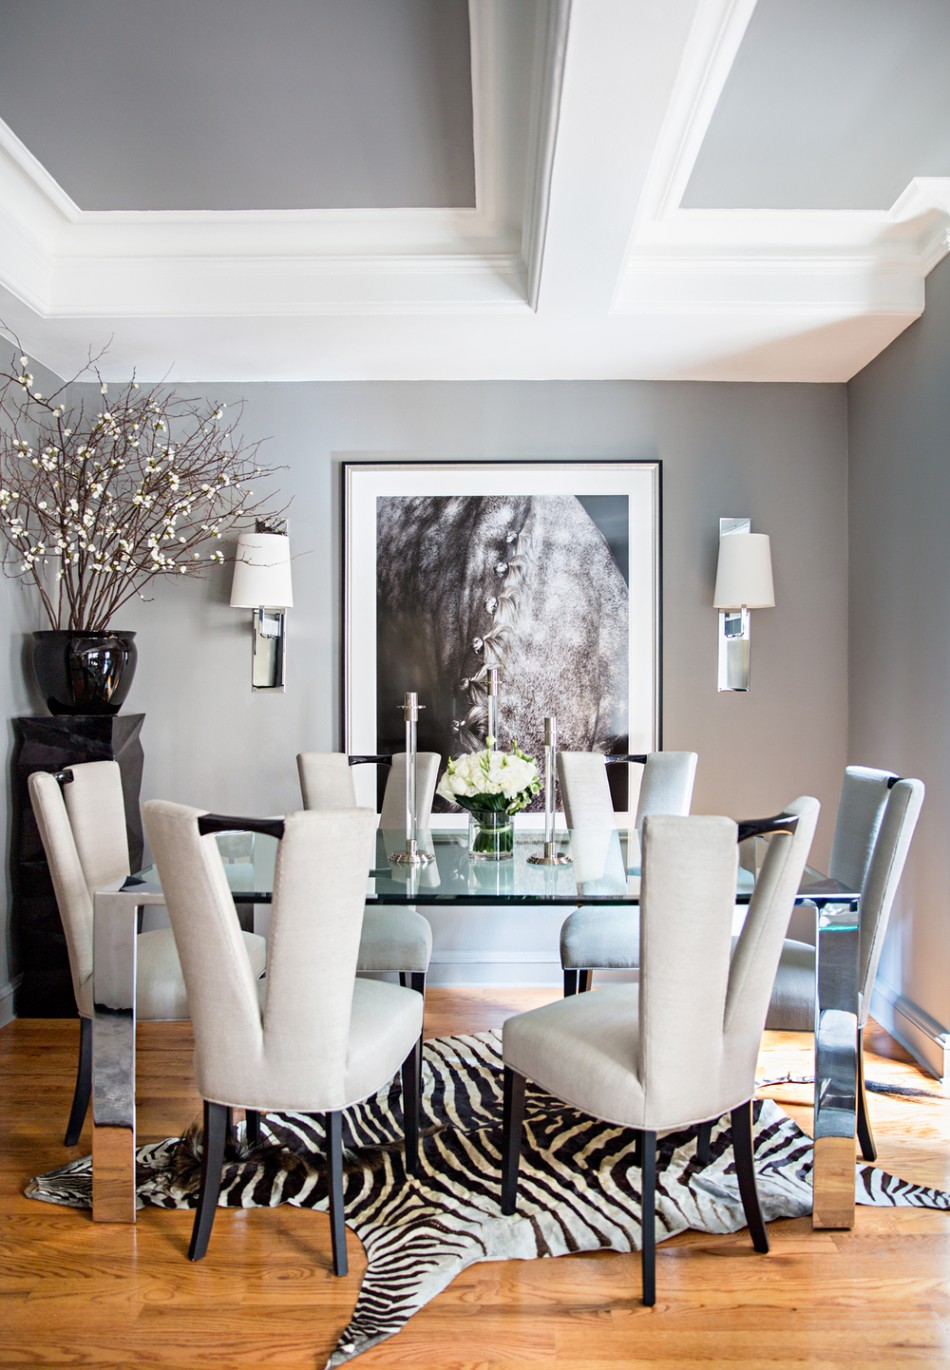 Outstanding Dining Room Ideas by 2018's AD100 Designers | www.moderndiningtables #moderndiningtables #diningroom #diningarea #interiordesign #exclusivedesign #interiordesigners #ad100 #topinteriordesigners @moderndiningtables dining room decor Outstanding Dining Room Decor Ideas by 2018's AD100 Designers Outstanding Dining Room Decor Ideas by 2018   s AD100 Designers 9